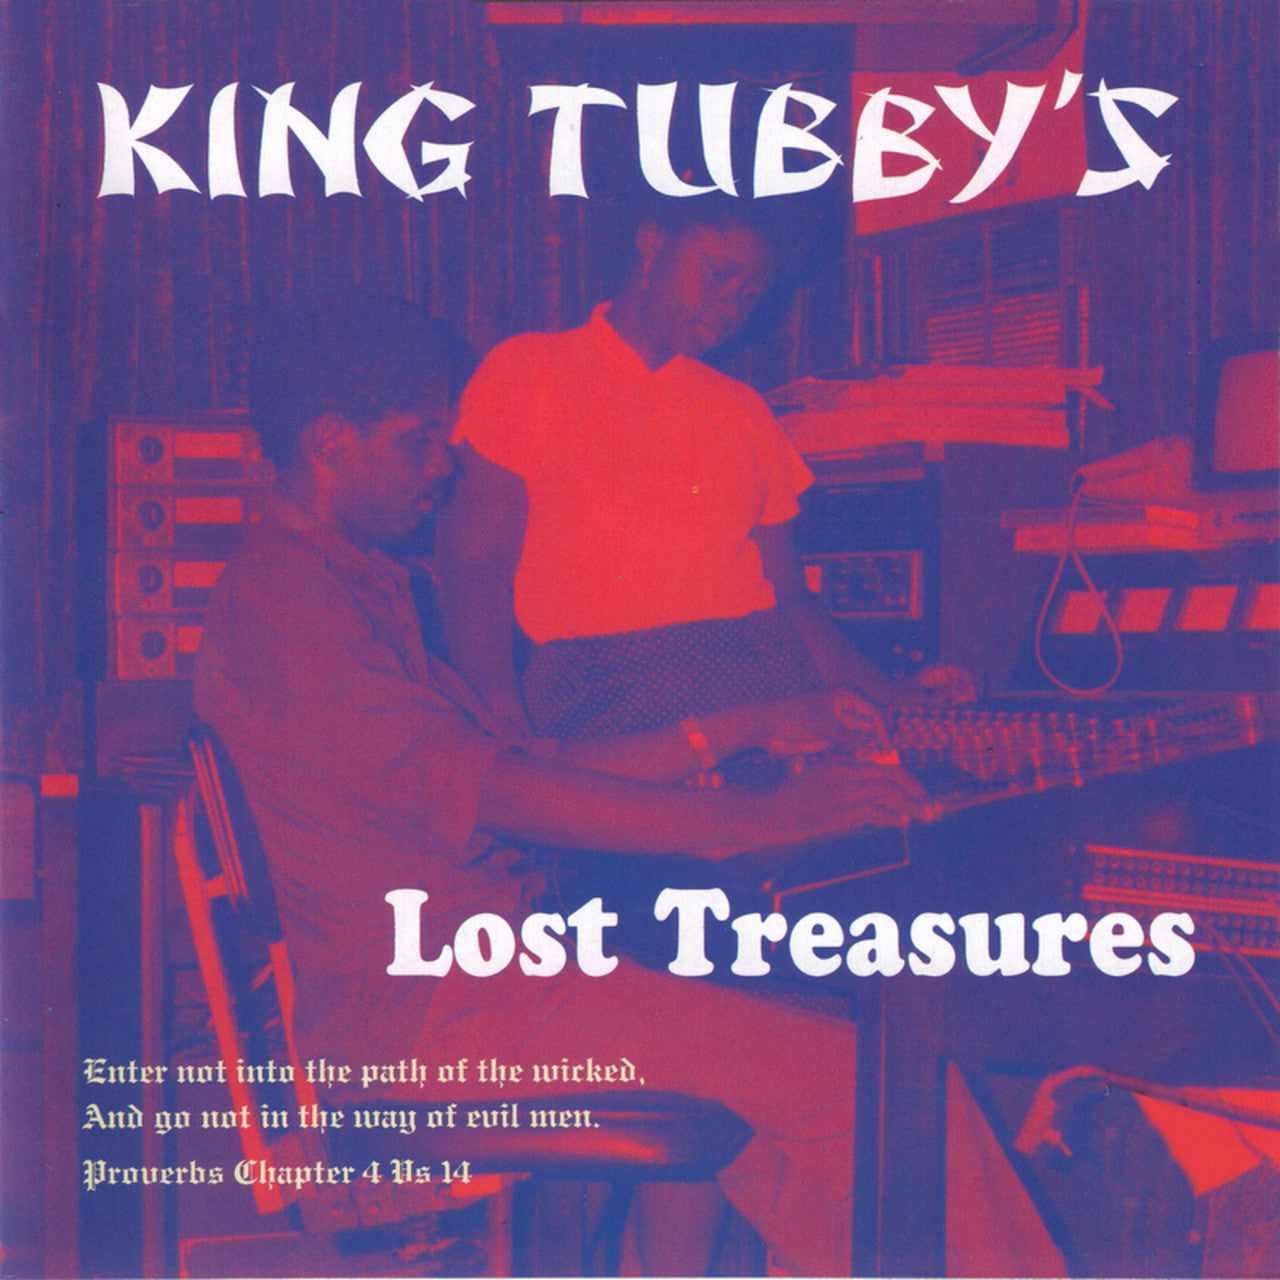 King Tubby - Lost Treasures - Unearthed Sounds